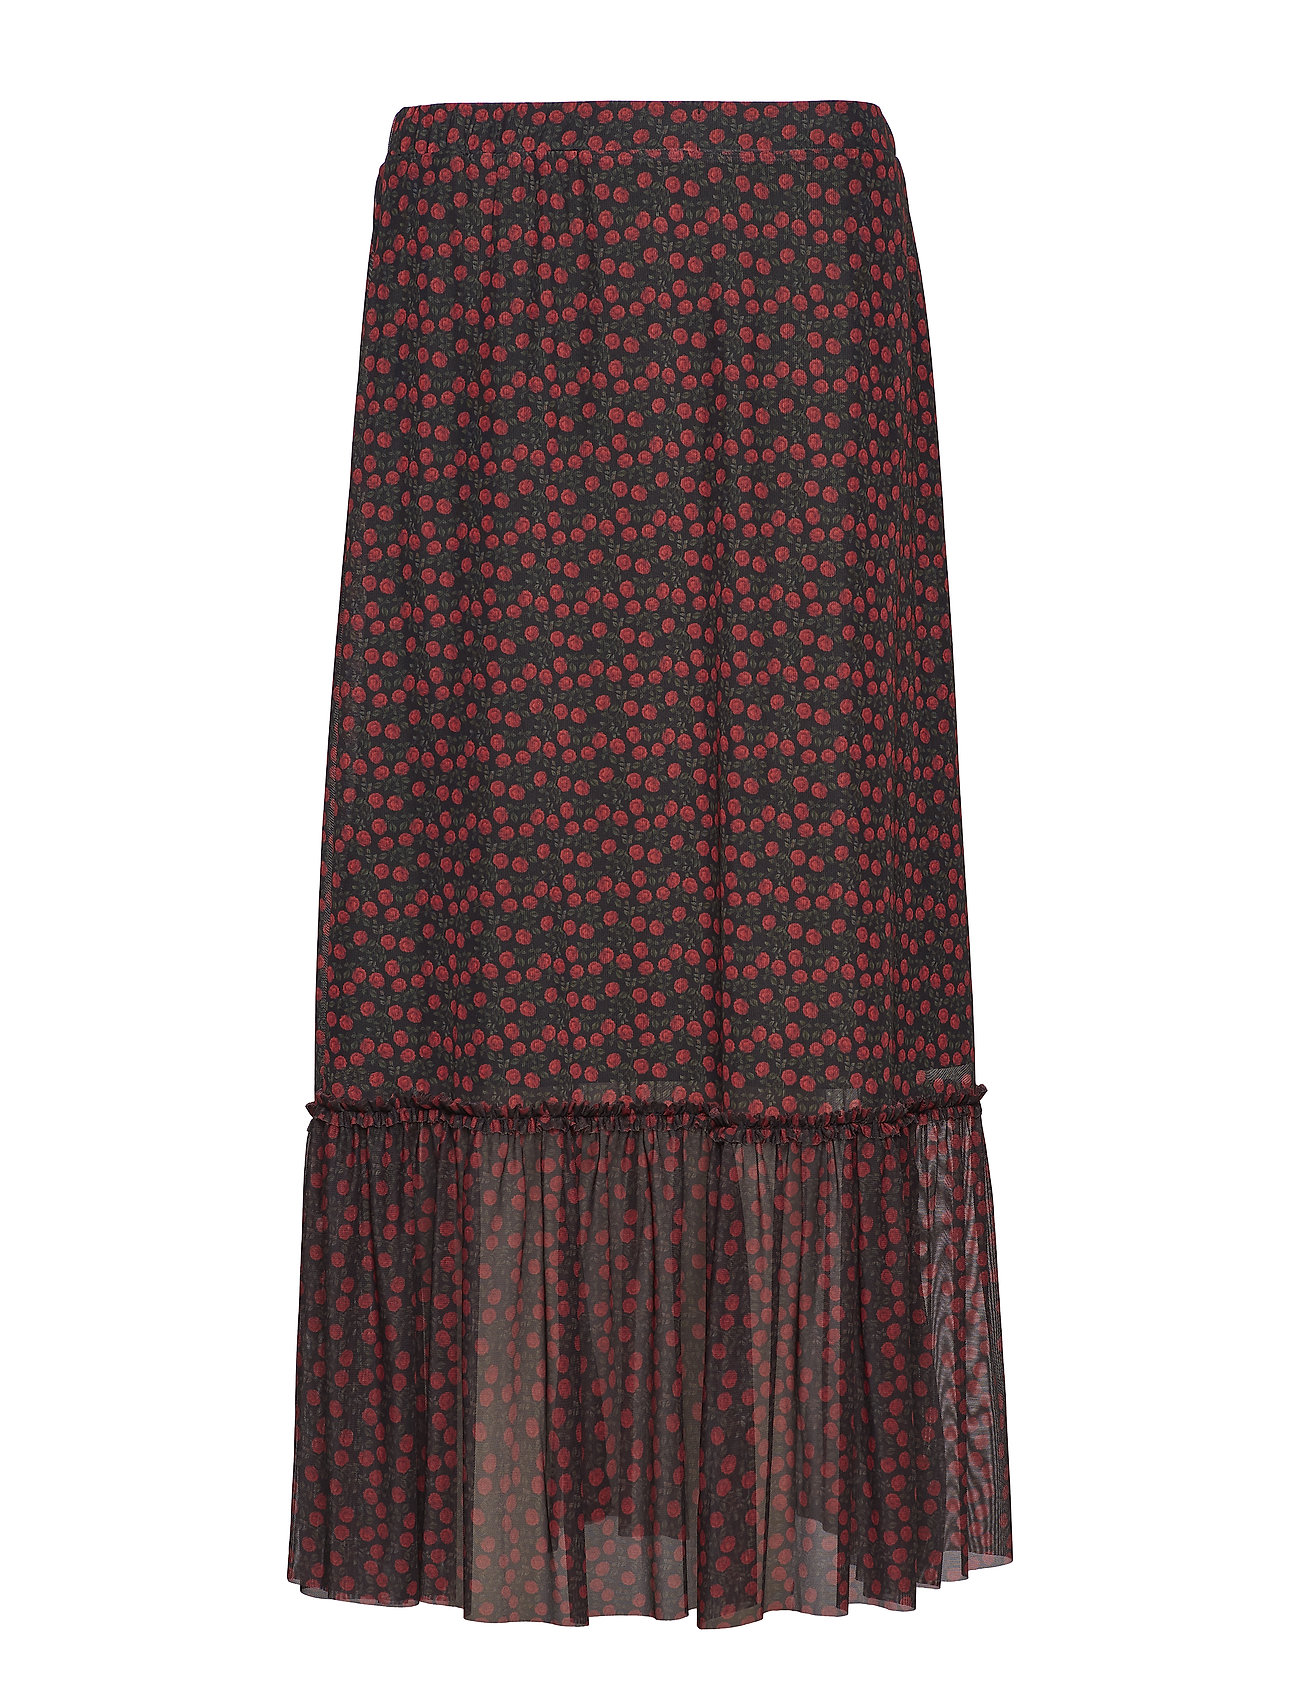 Image of Alley Maxi Skirt (3072437715)